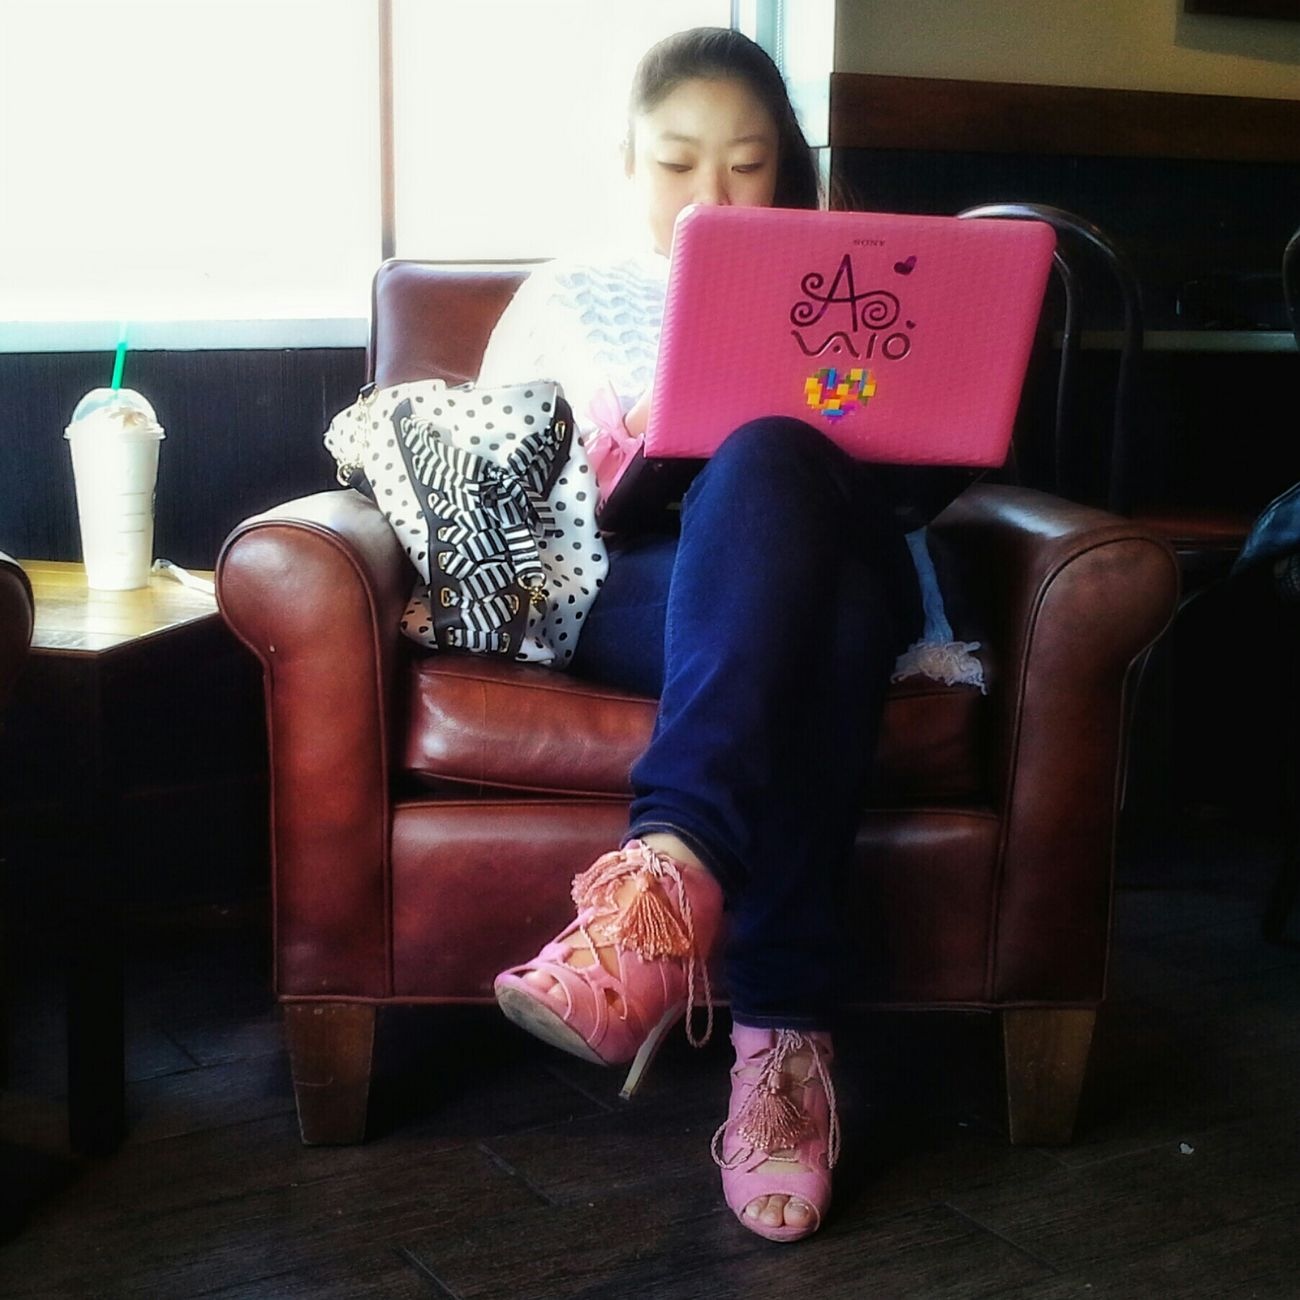 Samsung Galaxy Note 8 Streetphotography Street Starbucks Pink VAIO the pink vaio at Starbuck's